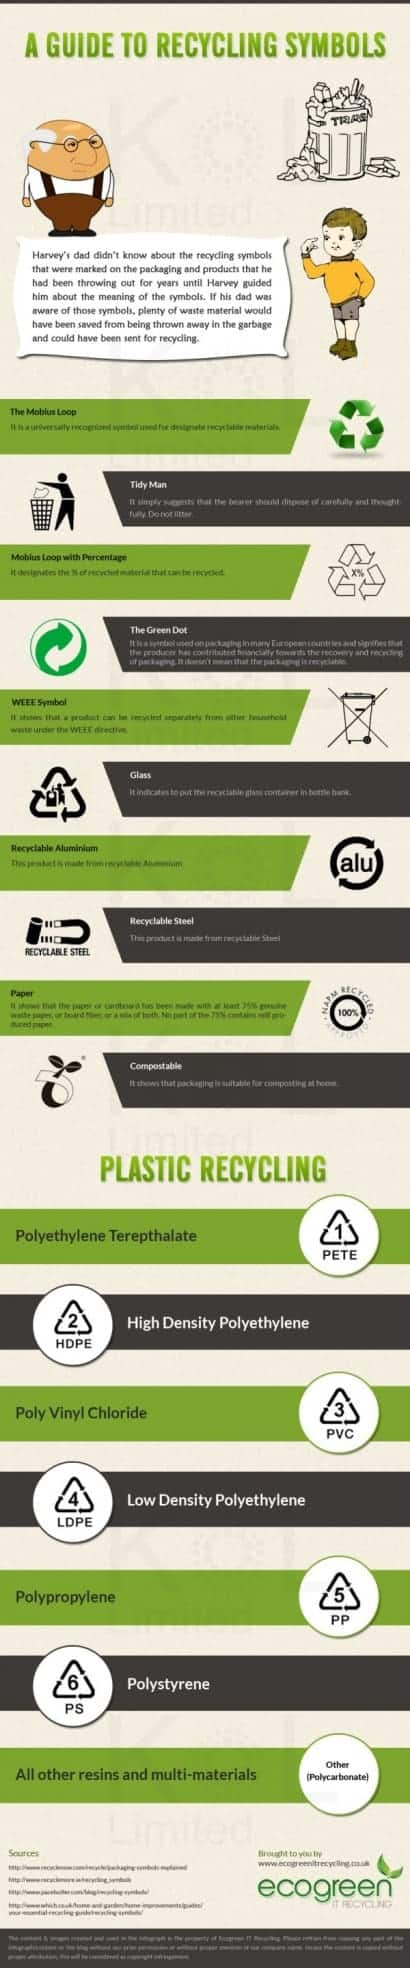 A Guide to Recycling Symbols